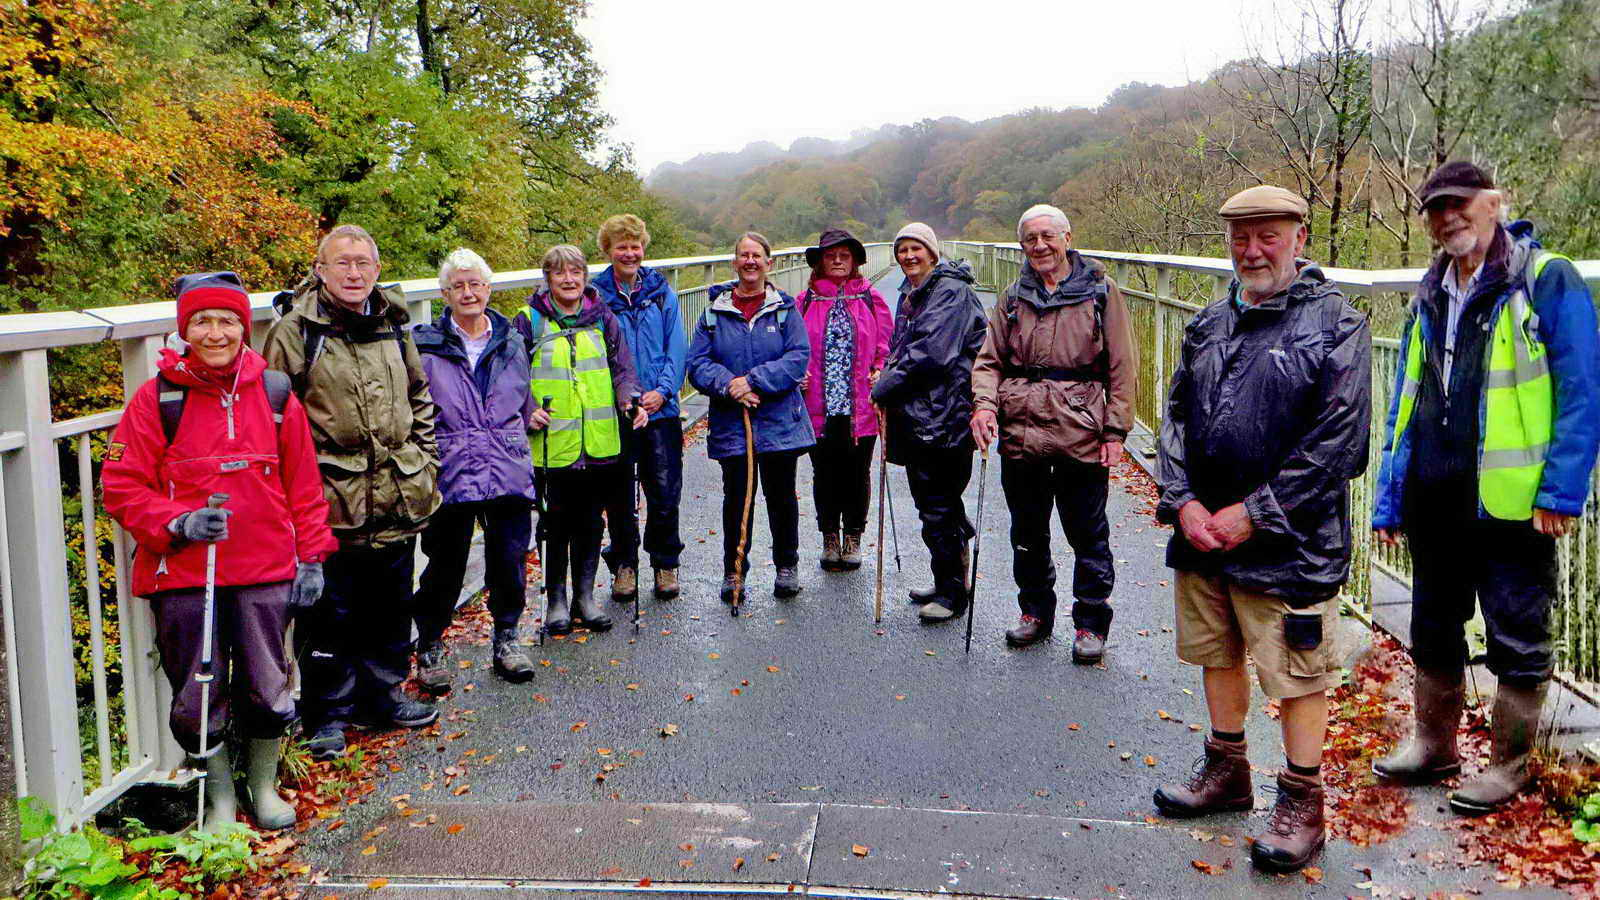 The walkers at Gem Bridge - all eleven of them